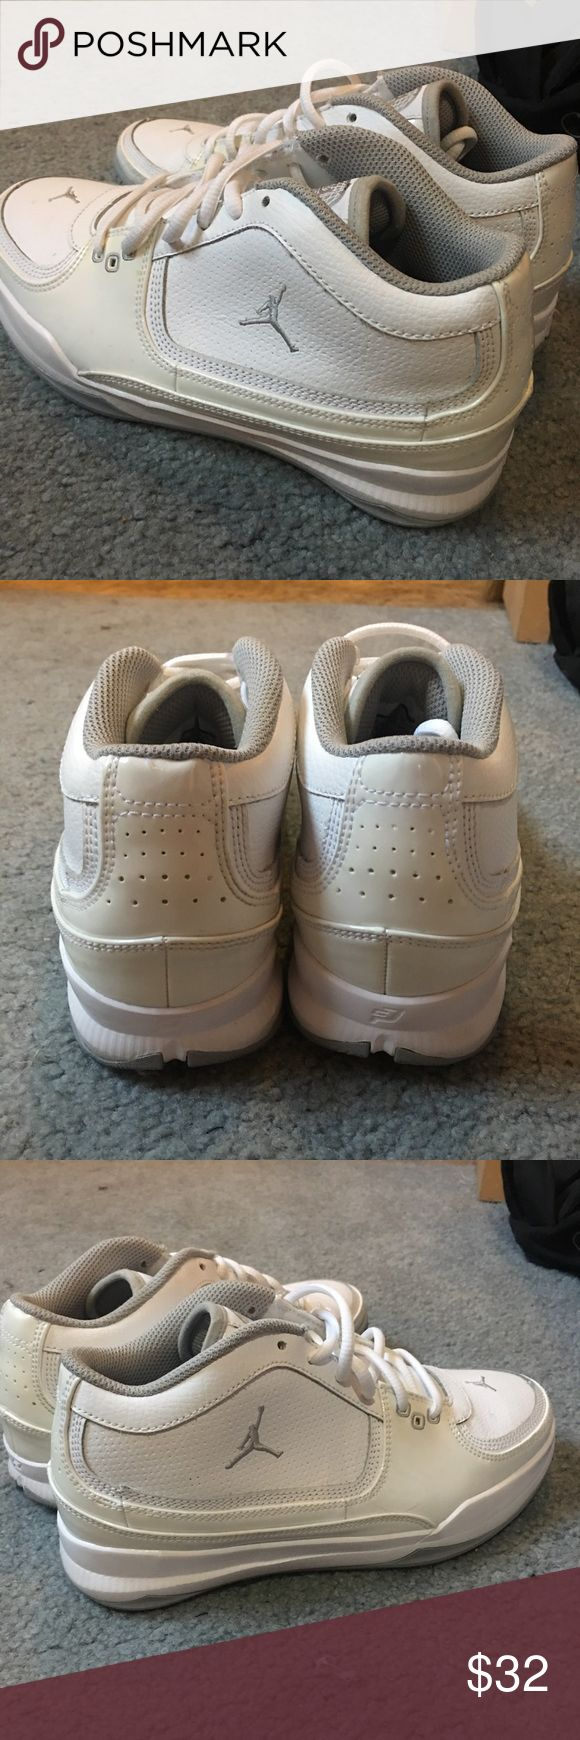 White Jordans Excellent condition Jordans. I wore them one time so they still look new! Kids size 6.5Y but will fit a size 7 or 7.5 in women's :) Air Jordan Shoes Athletic Shoes